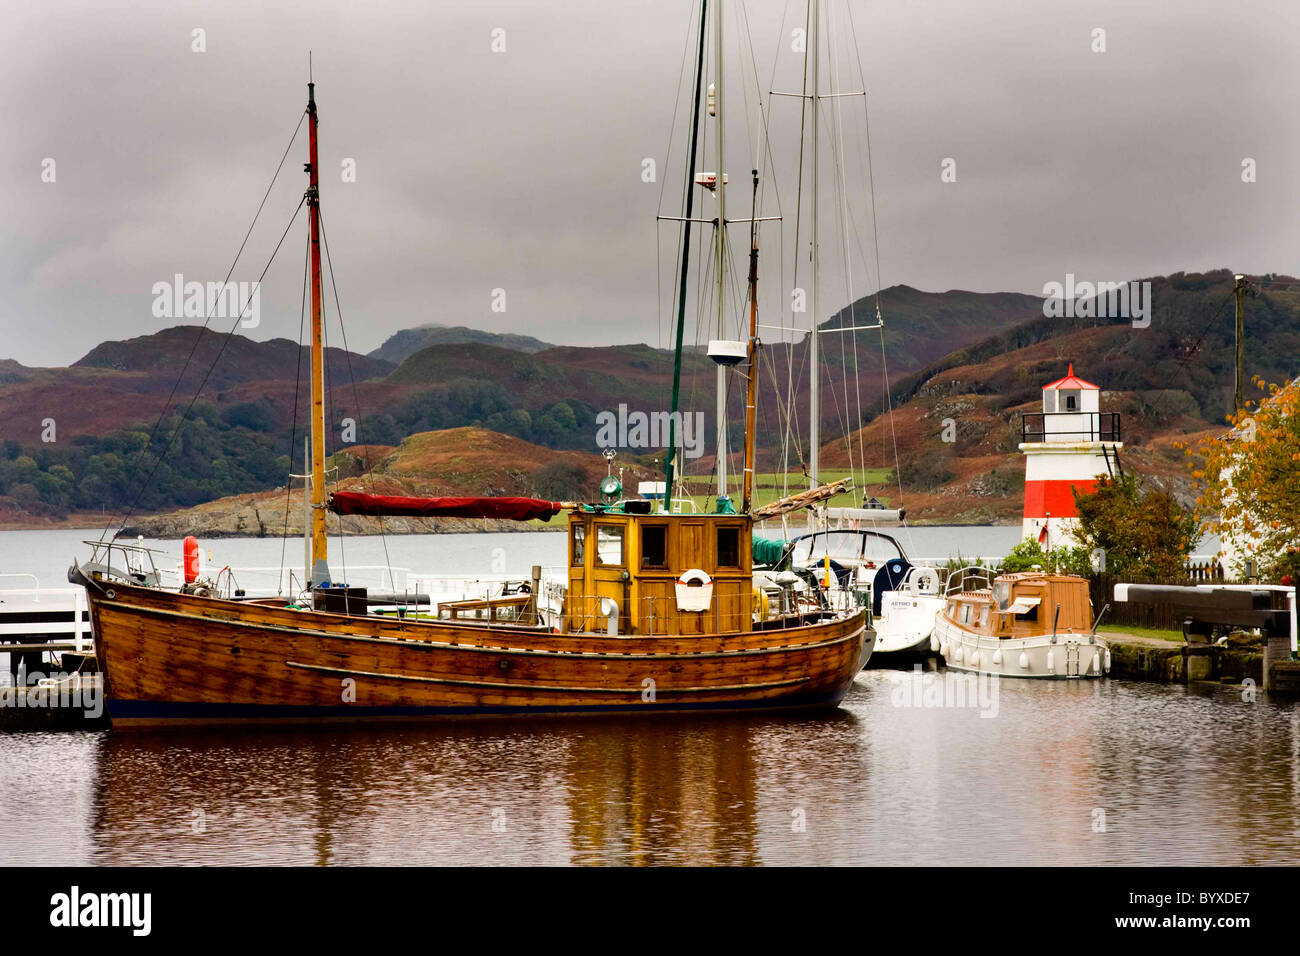 The Crinan Canal, Argylle, known as Britain's most beautiful shortcut. Stock Photo